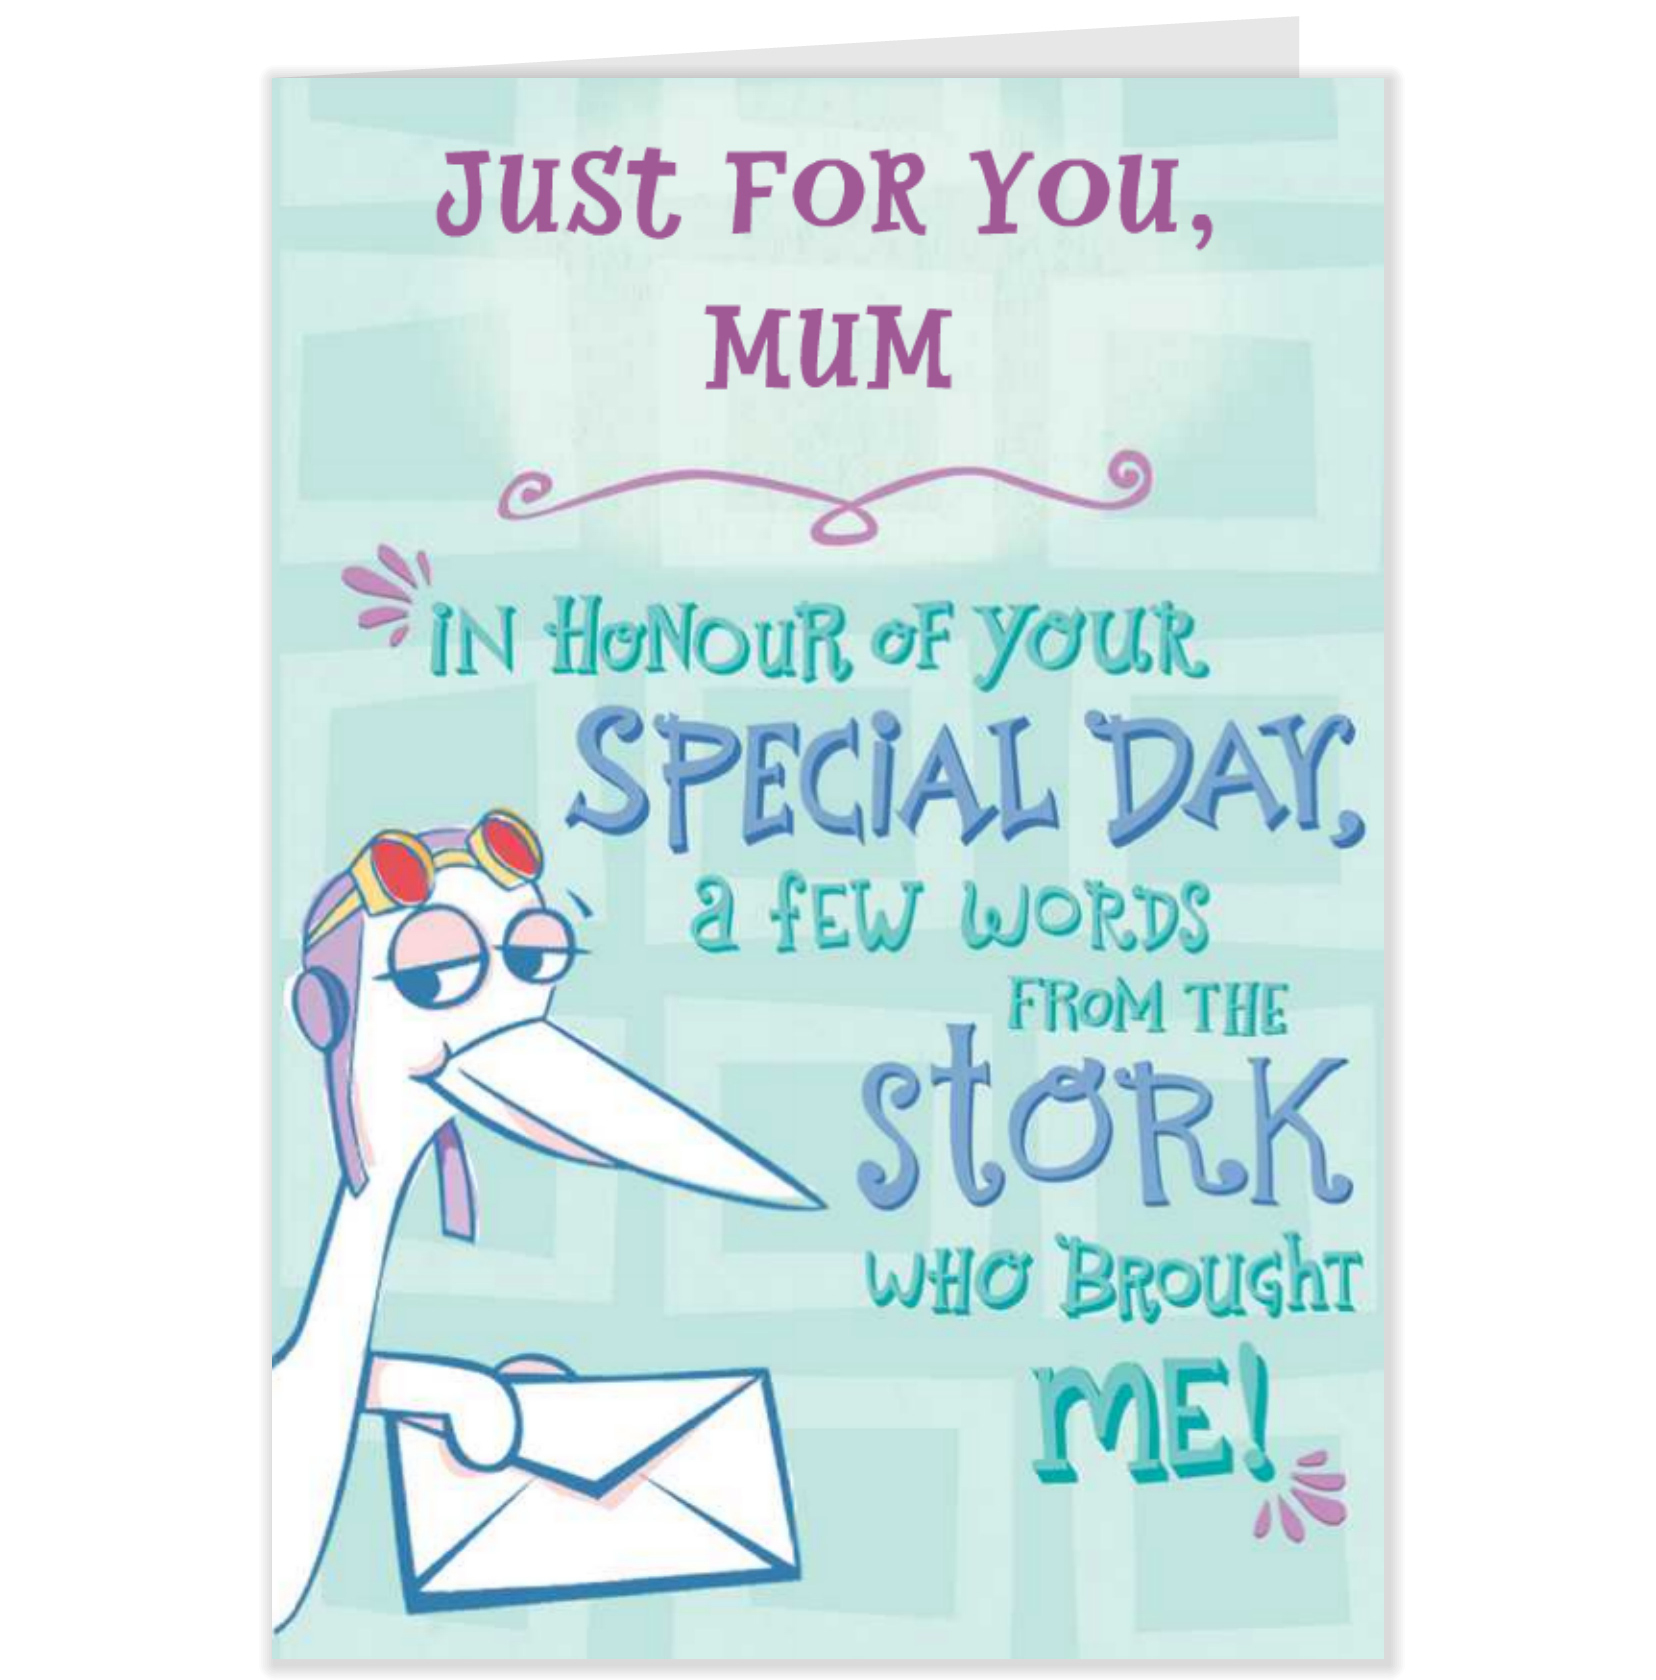 Hallmark Birthday Quotes Quotesgram: Hallmark Mothers Day Quotes. QuotesGram